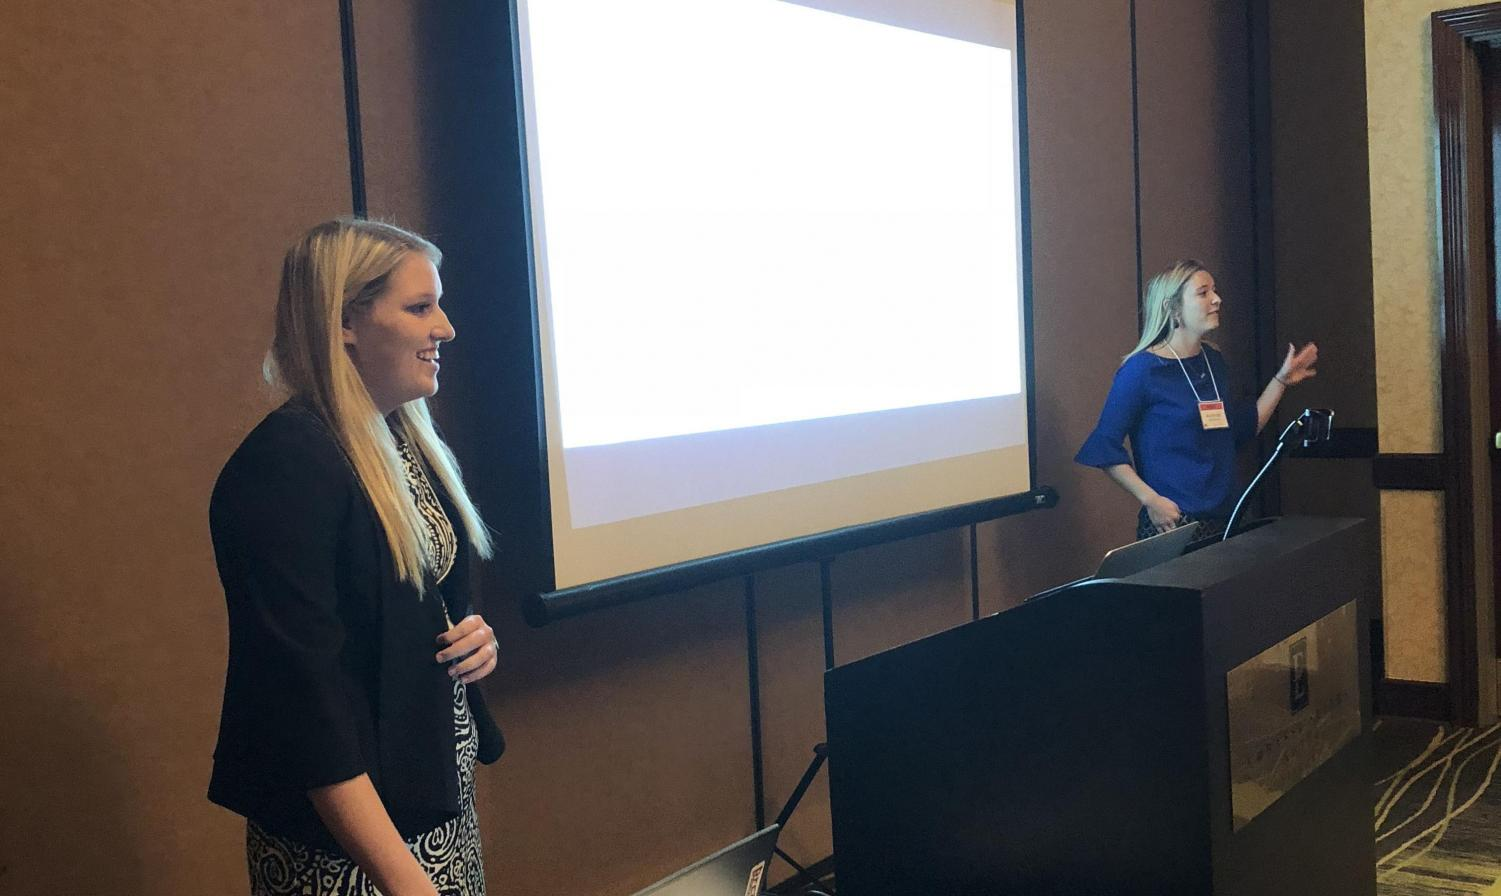 Seniors Madison Lutzs and Hannah Tolliver share their presentation at the Womens Leadership Conference in Nebraska.